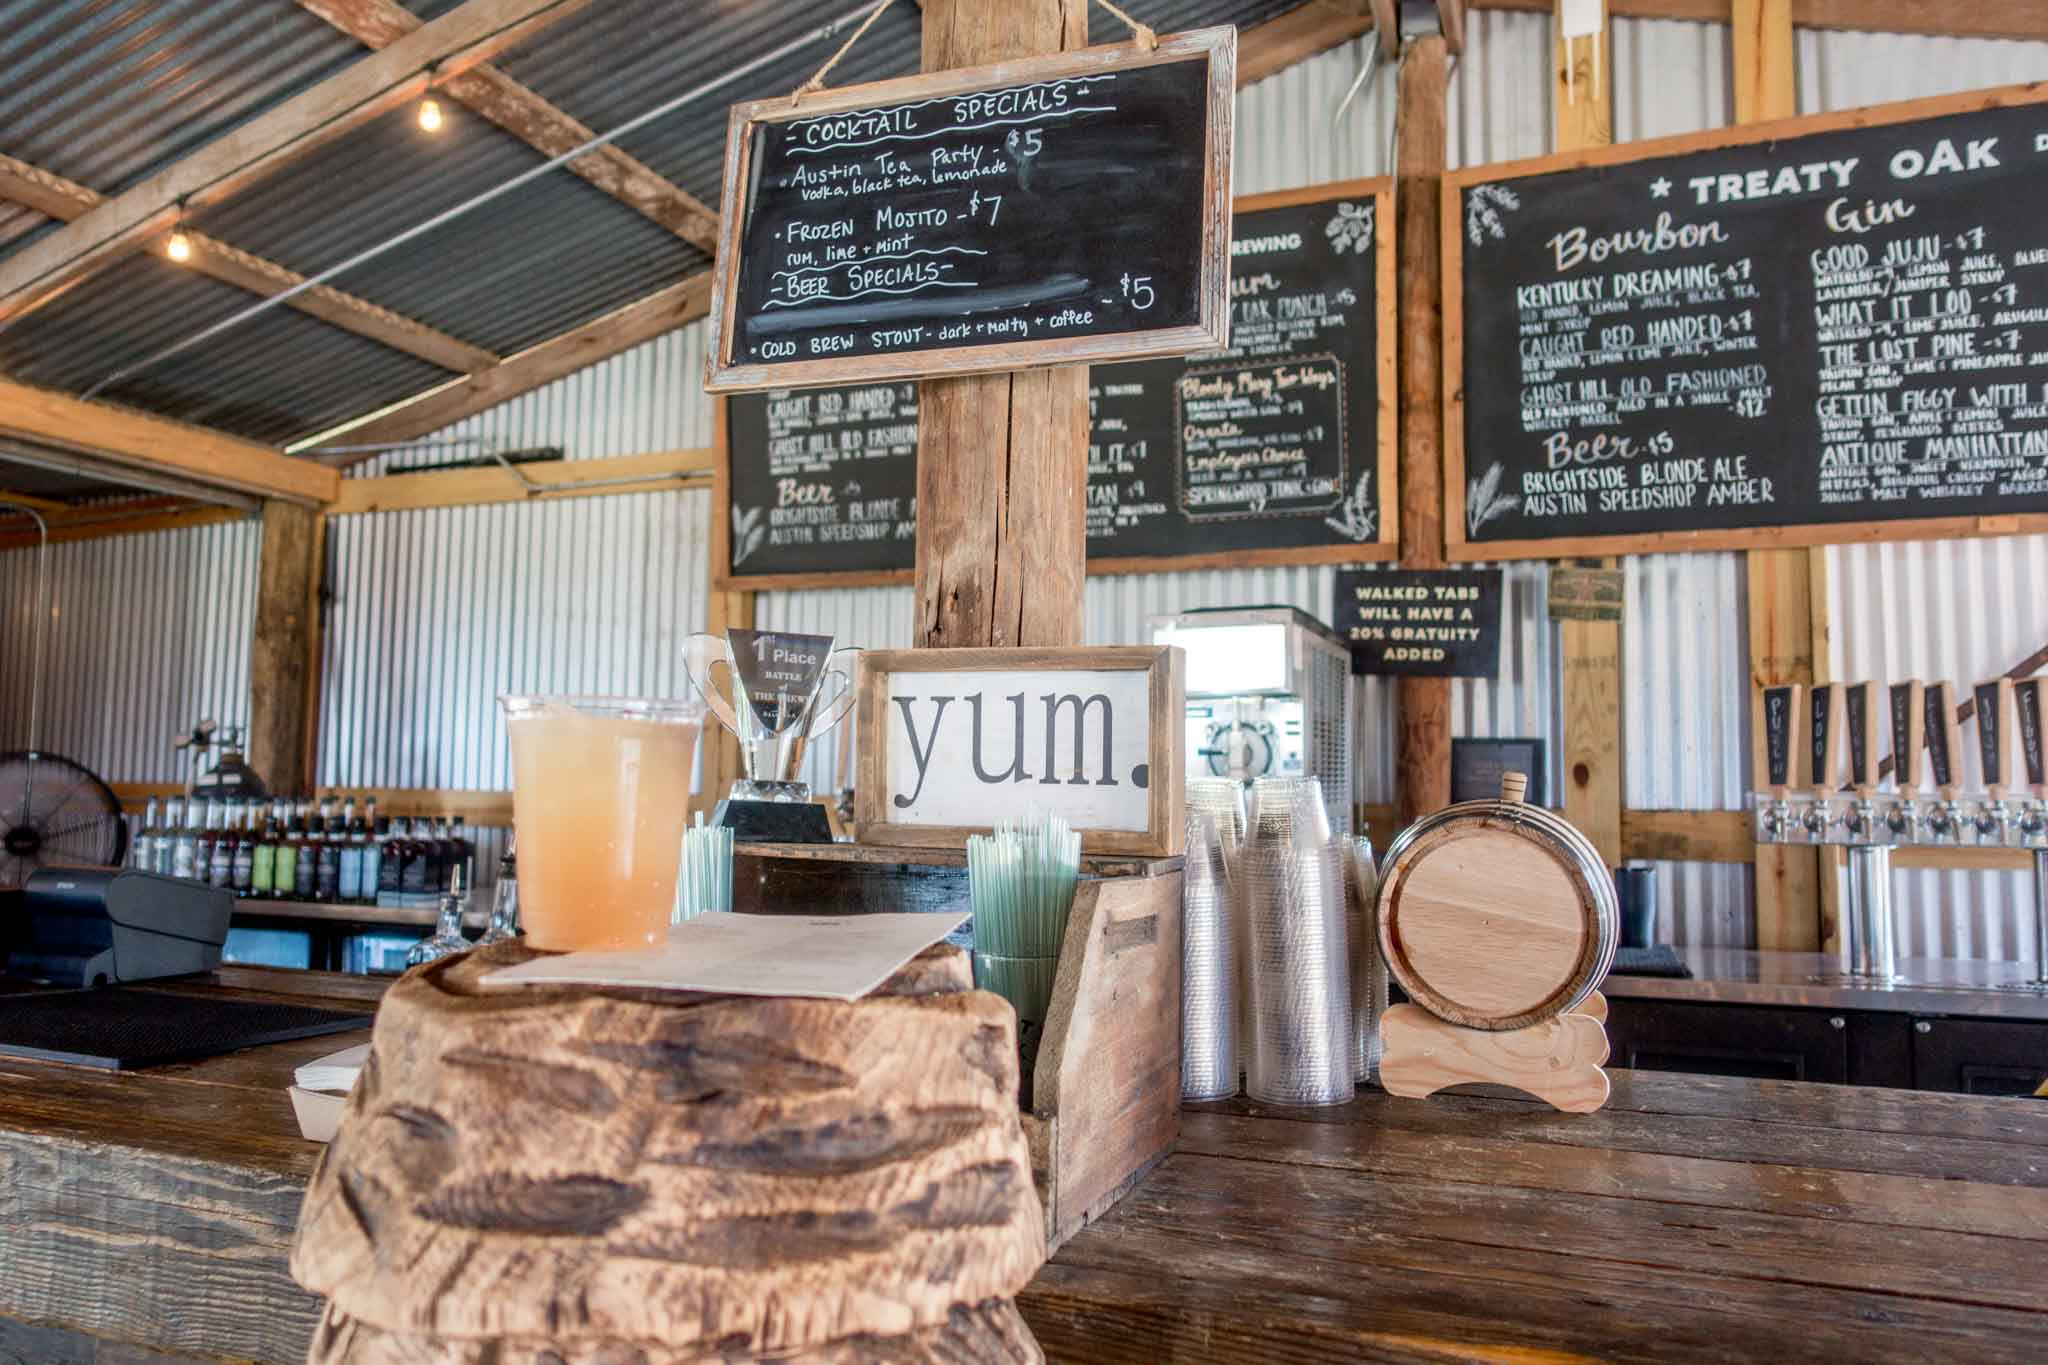 Menu, bar, and drink at Treaty Oak Distillery